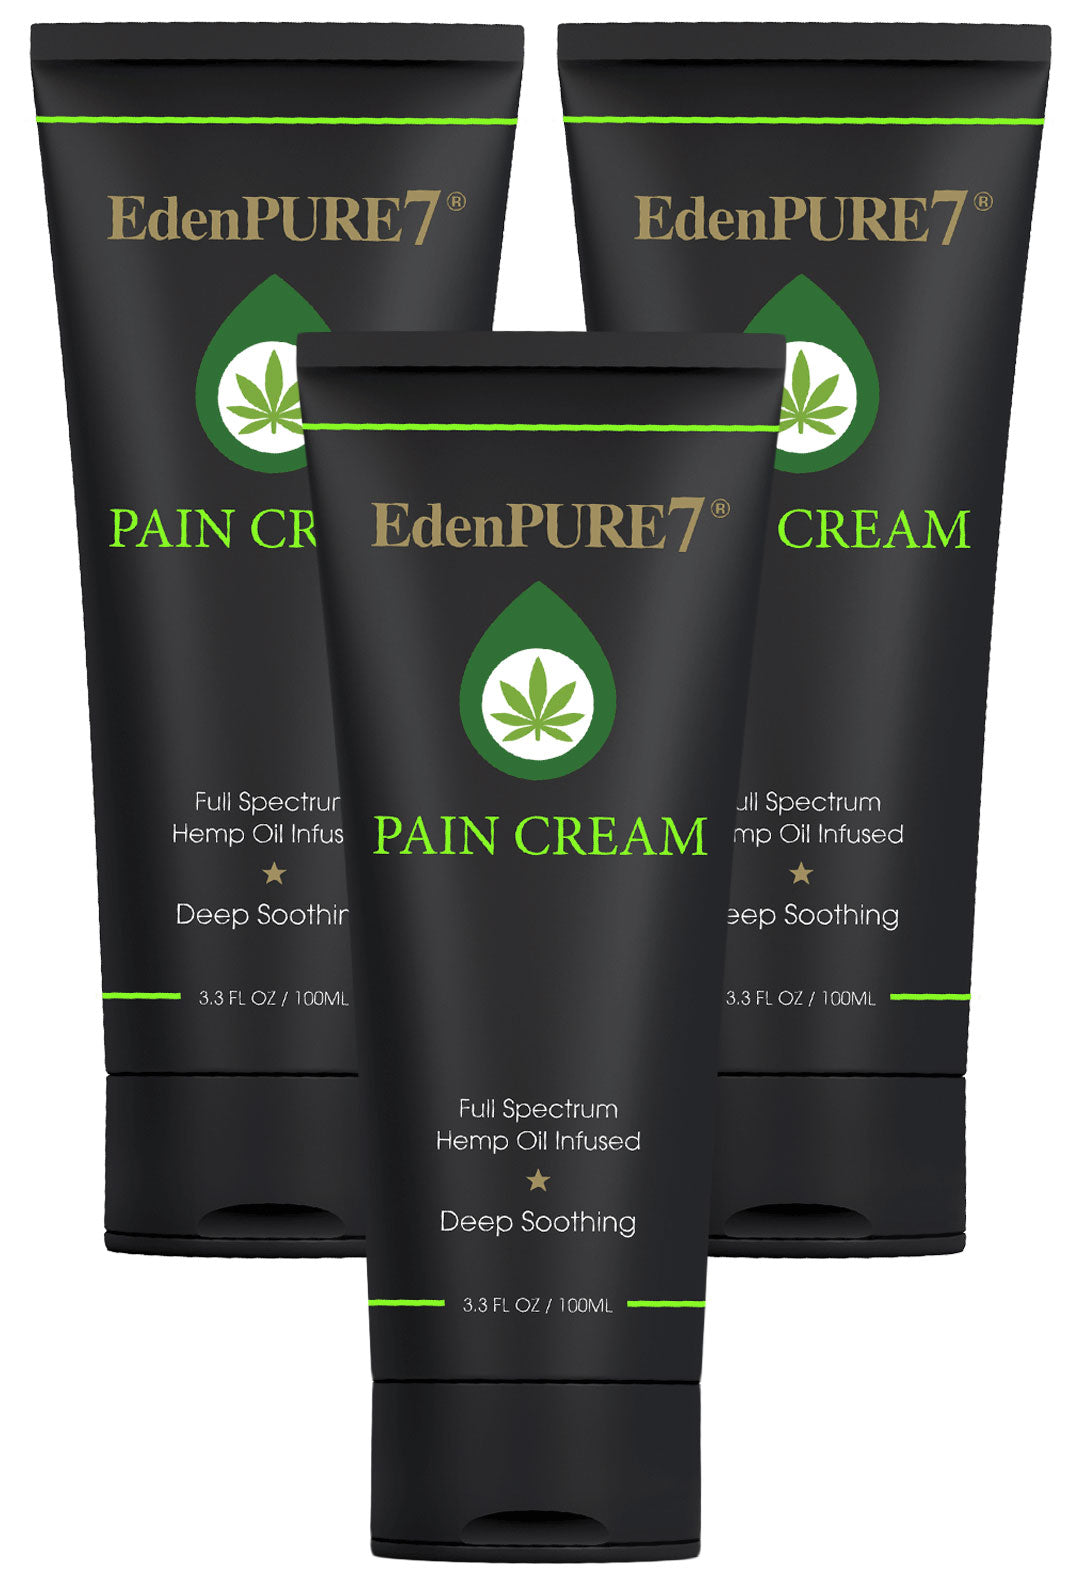 EdenPURE7® Pain Cream - 3 units